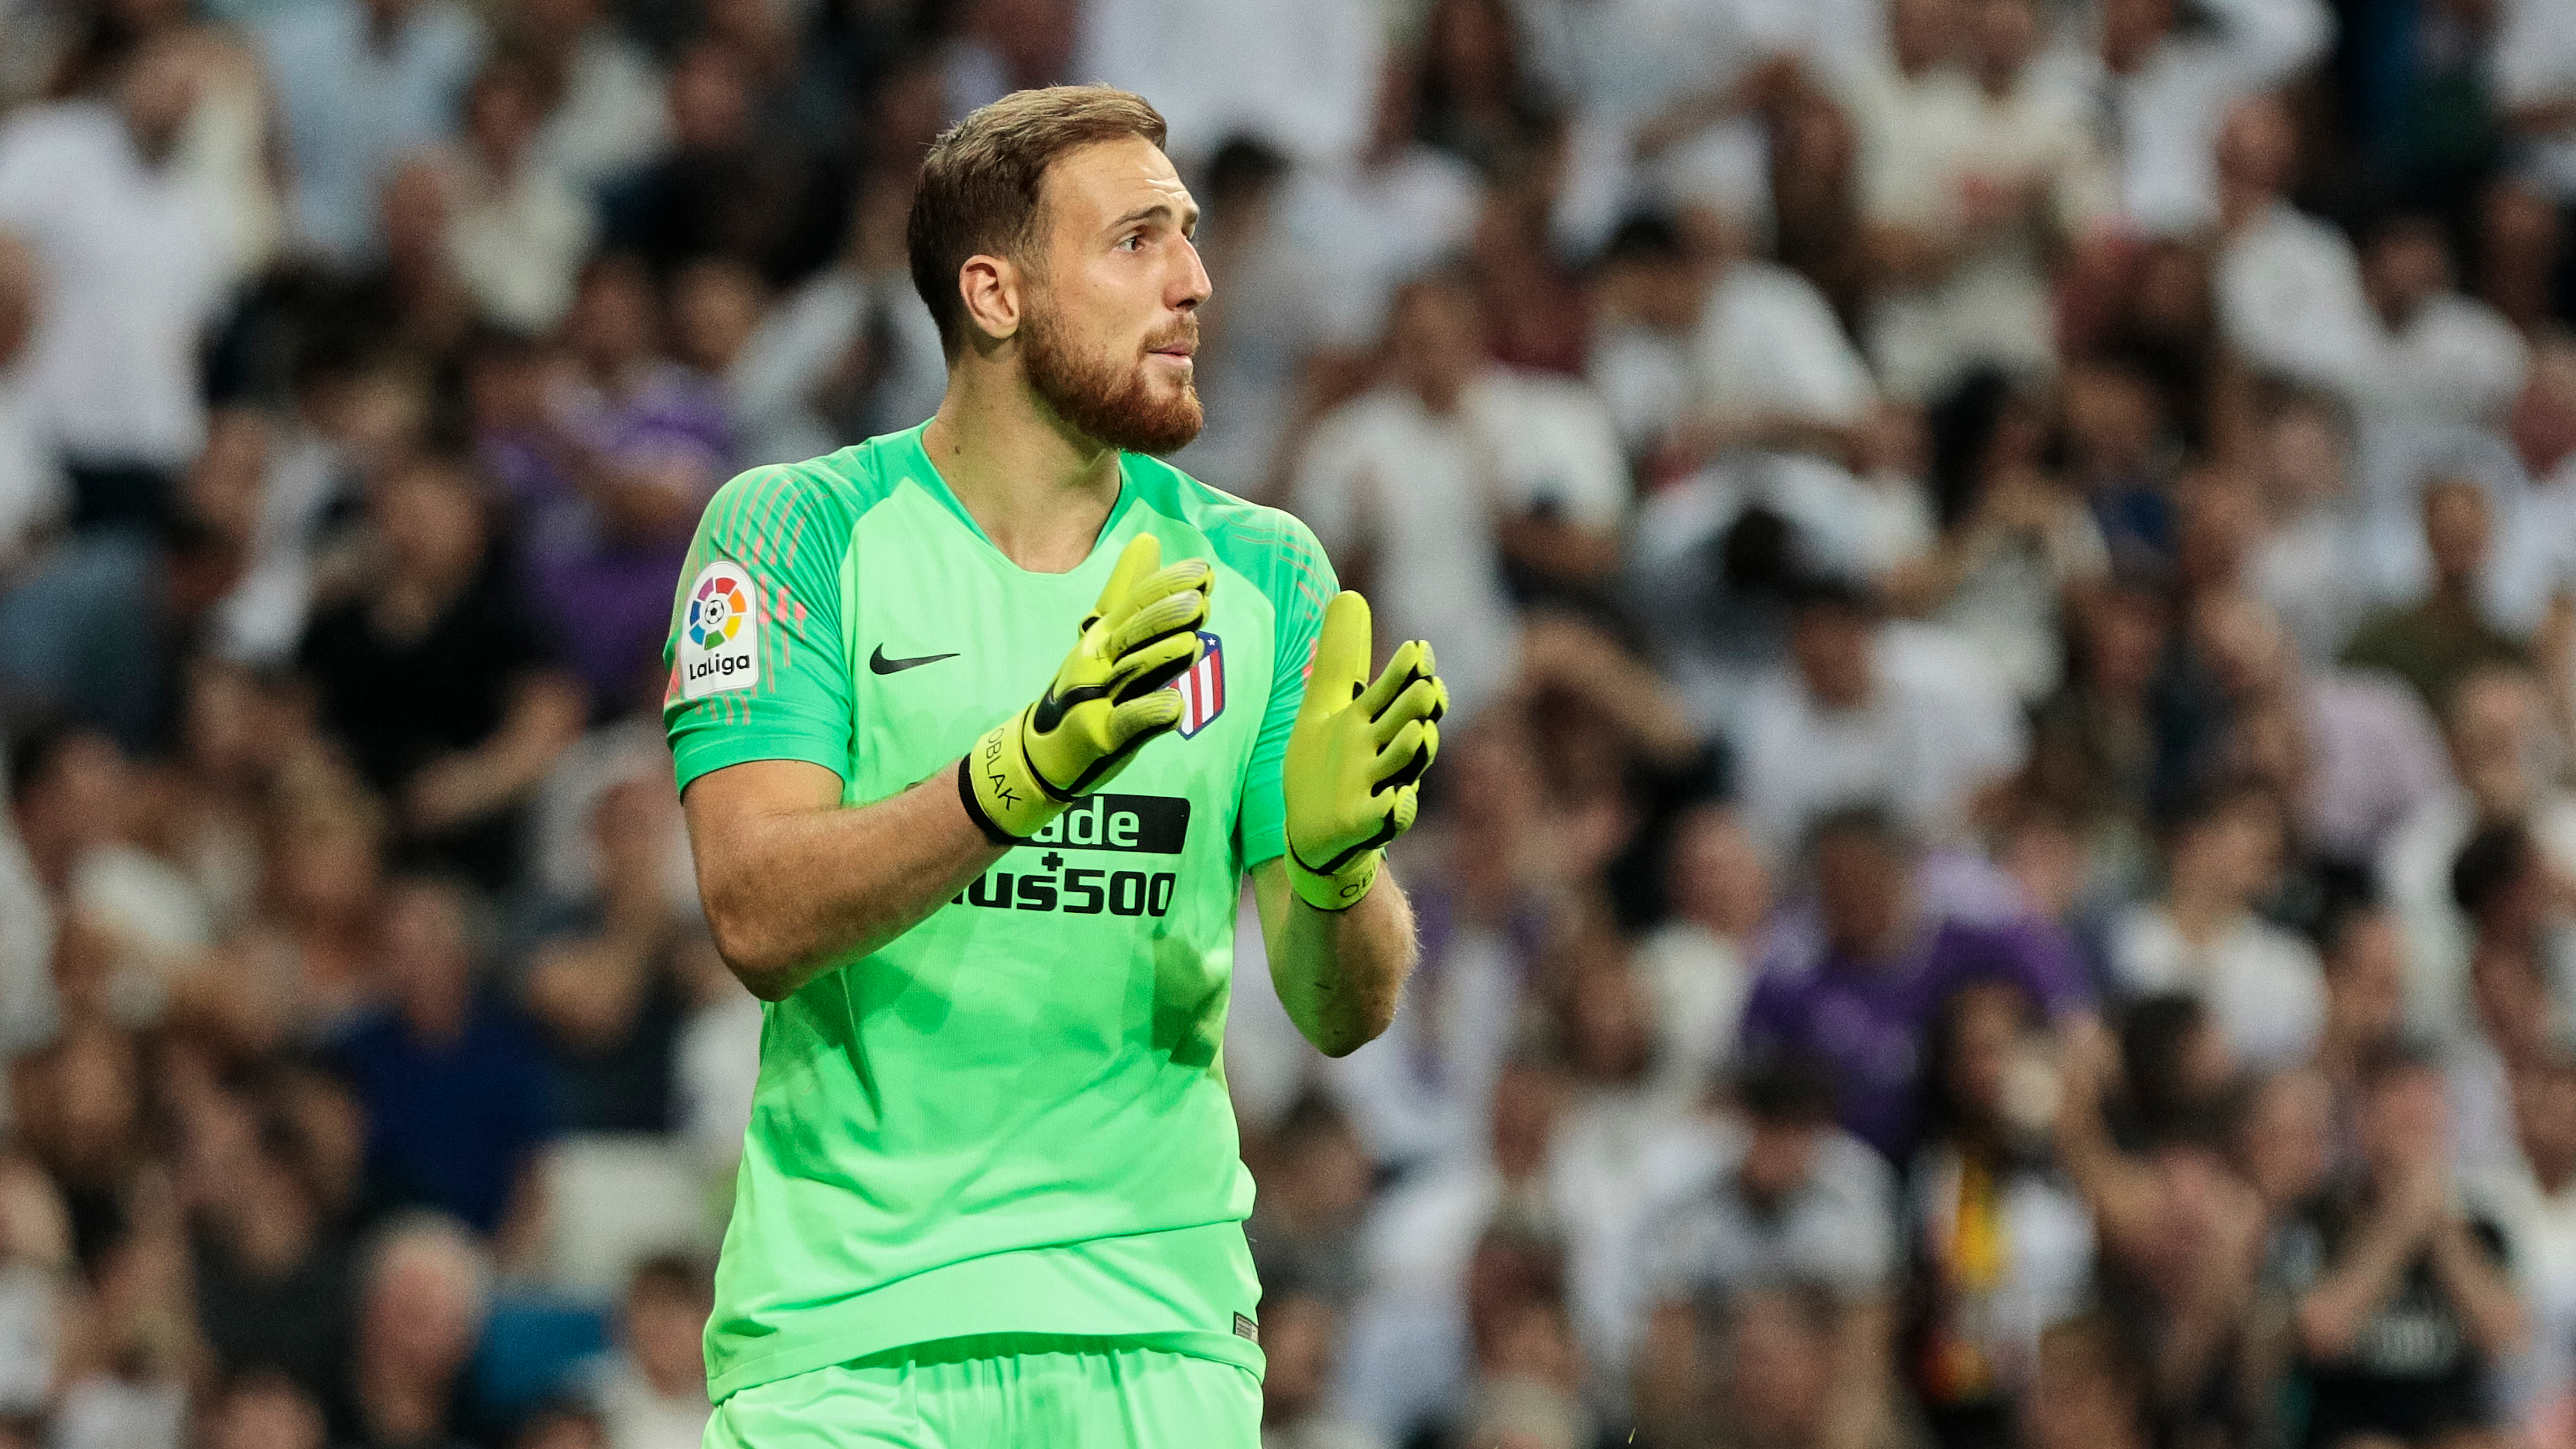 d719f49dfff Jan Oblak Has More Clean Sheets Than Goals Conceded Since 2014 15 ...